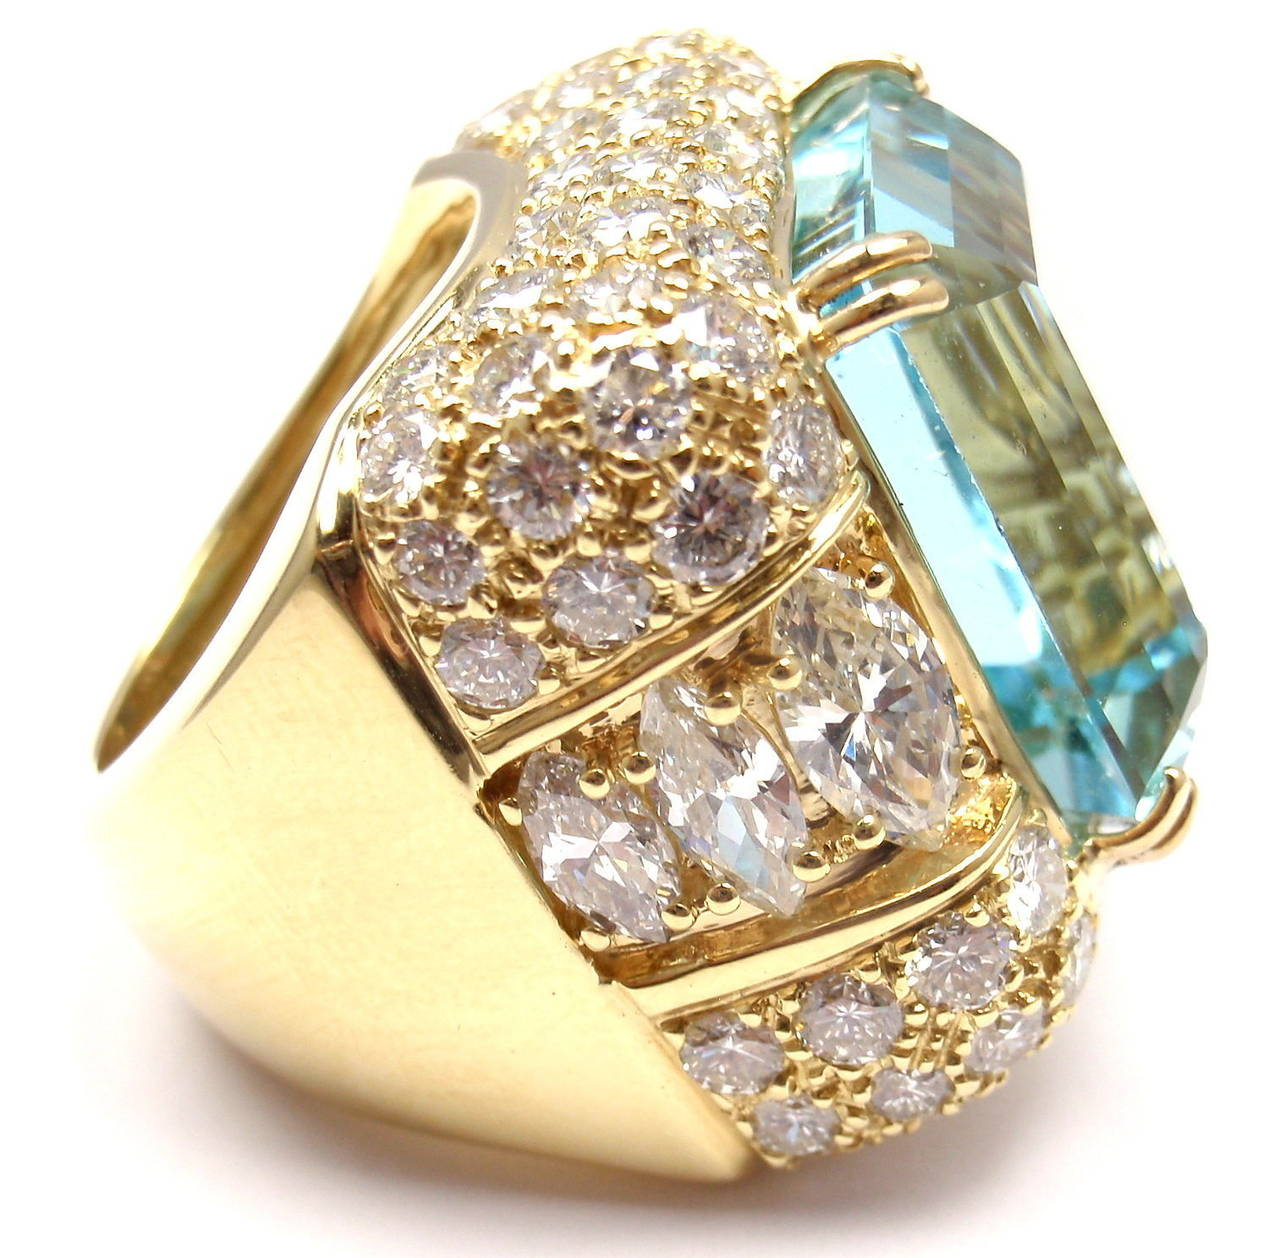 18k Yellow Gold Diamond Large Aquamarine Ring by Hammerman Brothers.